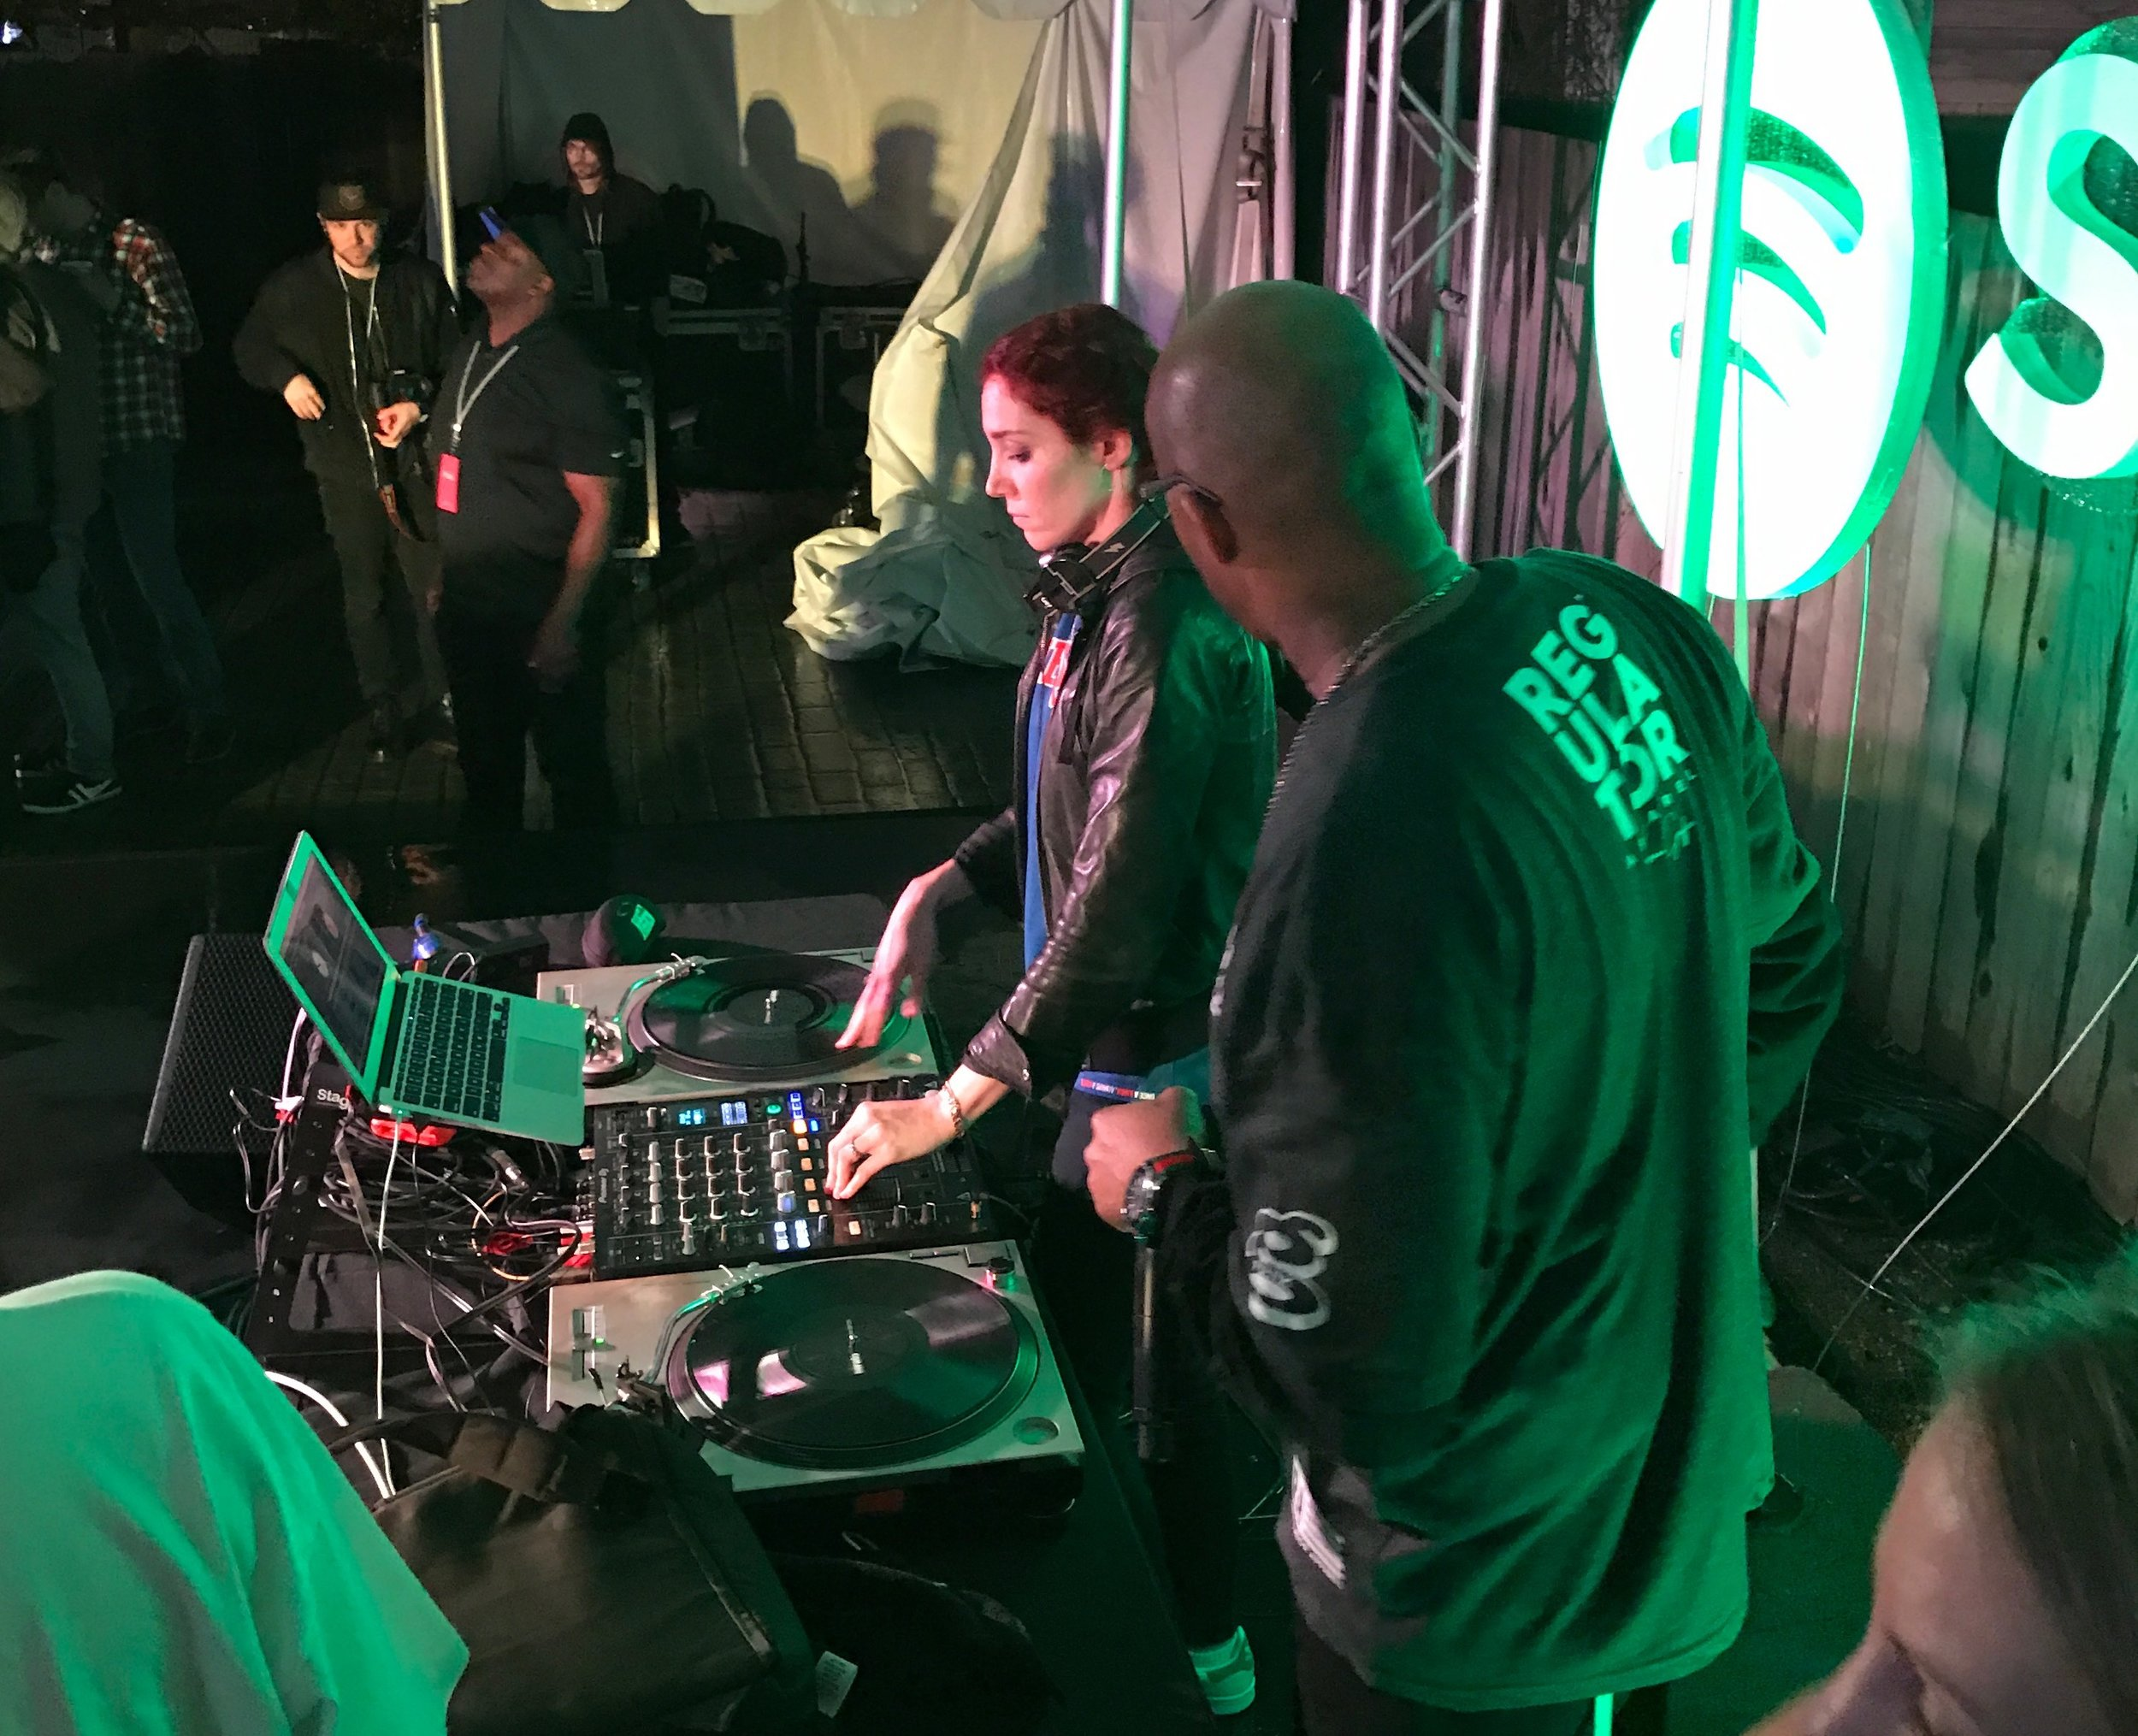 w/ Warren G @ Spotify x SXSW 2017